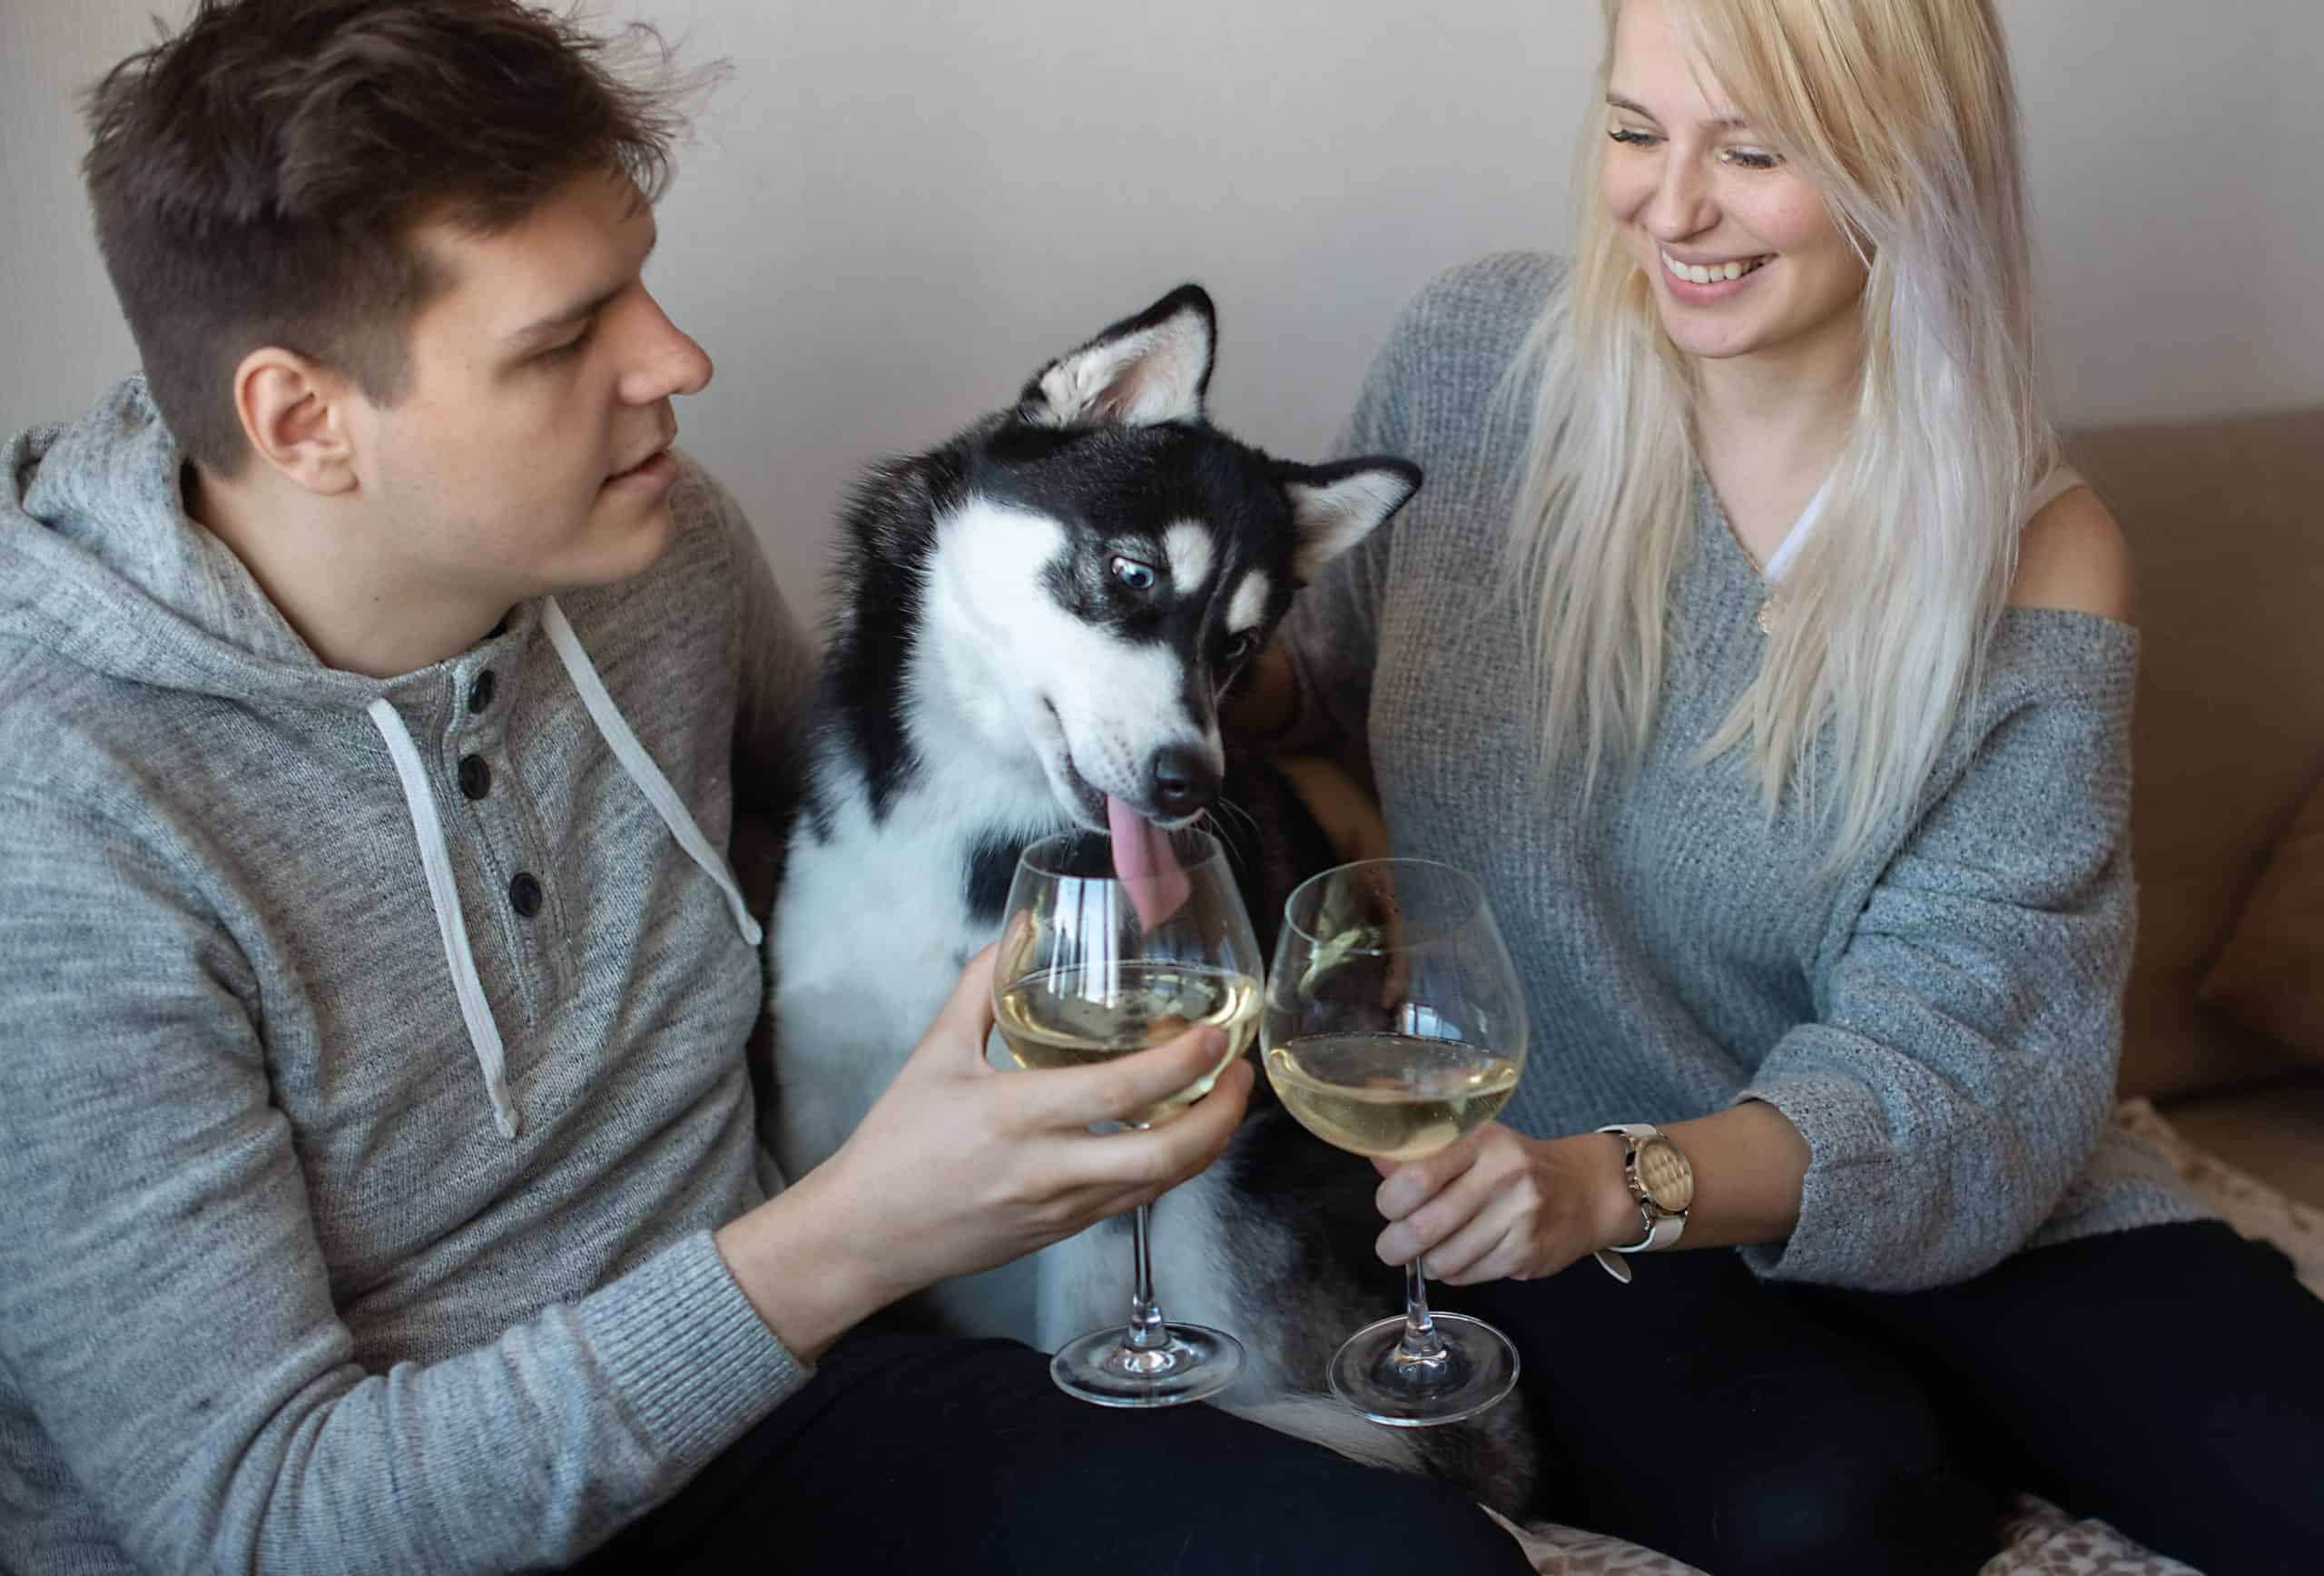 Siberian Husky tries to drink wine from his owner's glass. Dogs tend to imitate their owners so it's not unusual for your dog to develop an interest in wine merely because he's observed you enjoying the drink.